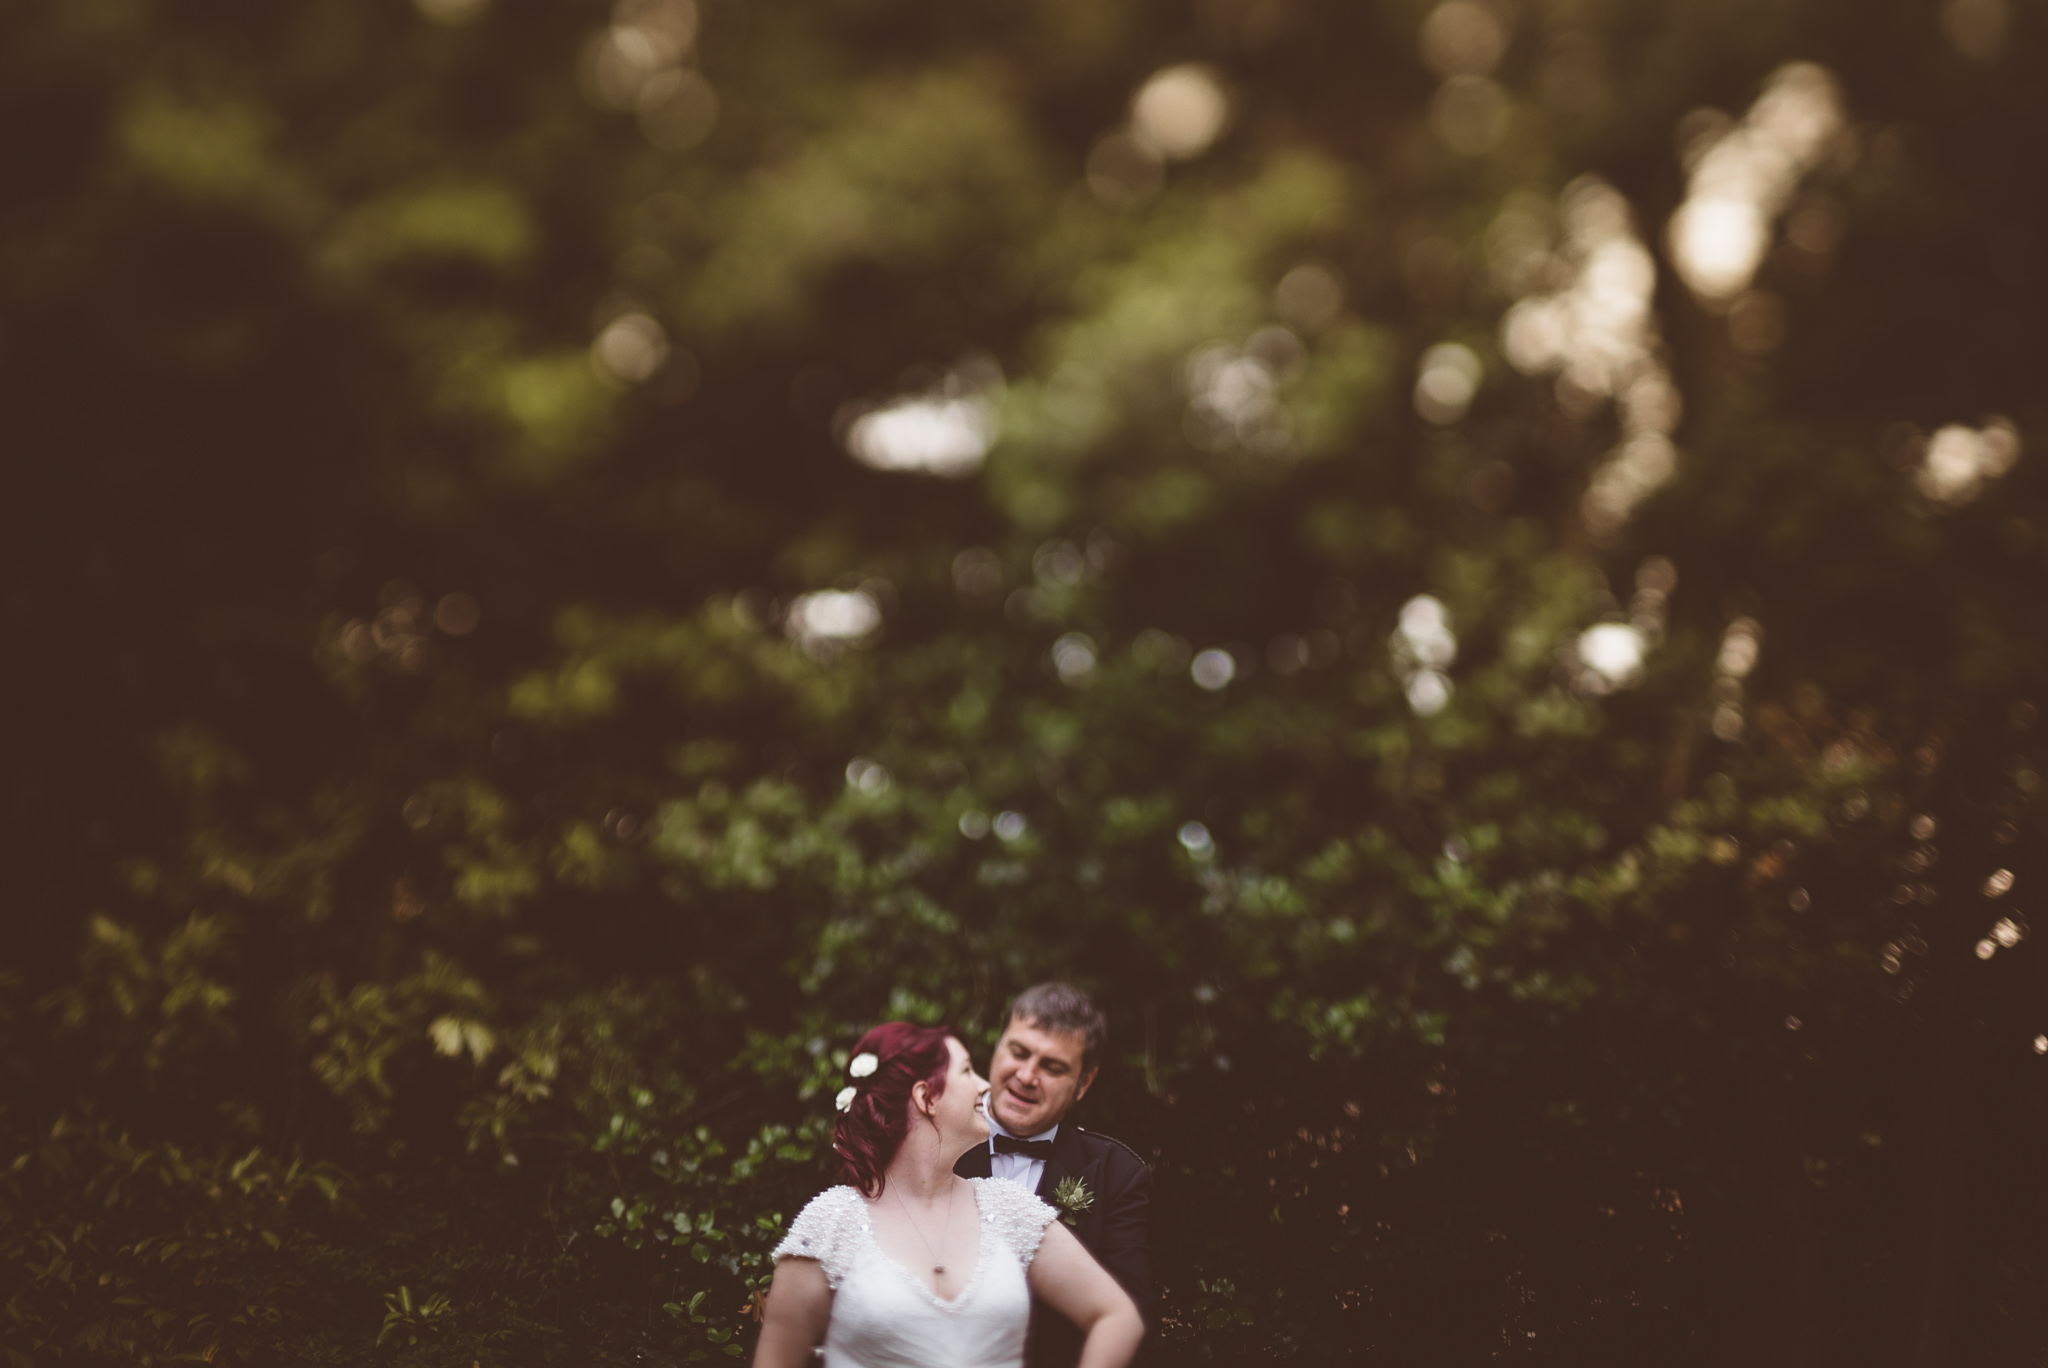 paul-marbrook-best-wedding-photographer-north-wales-075146